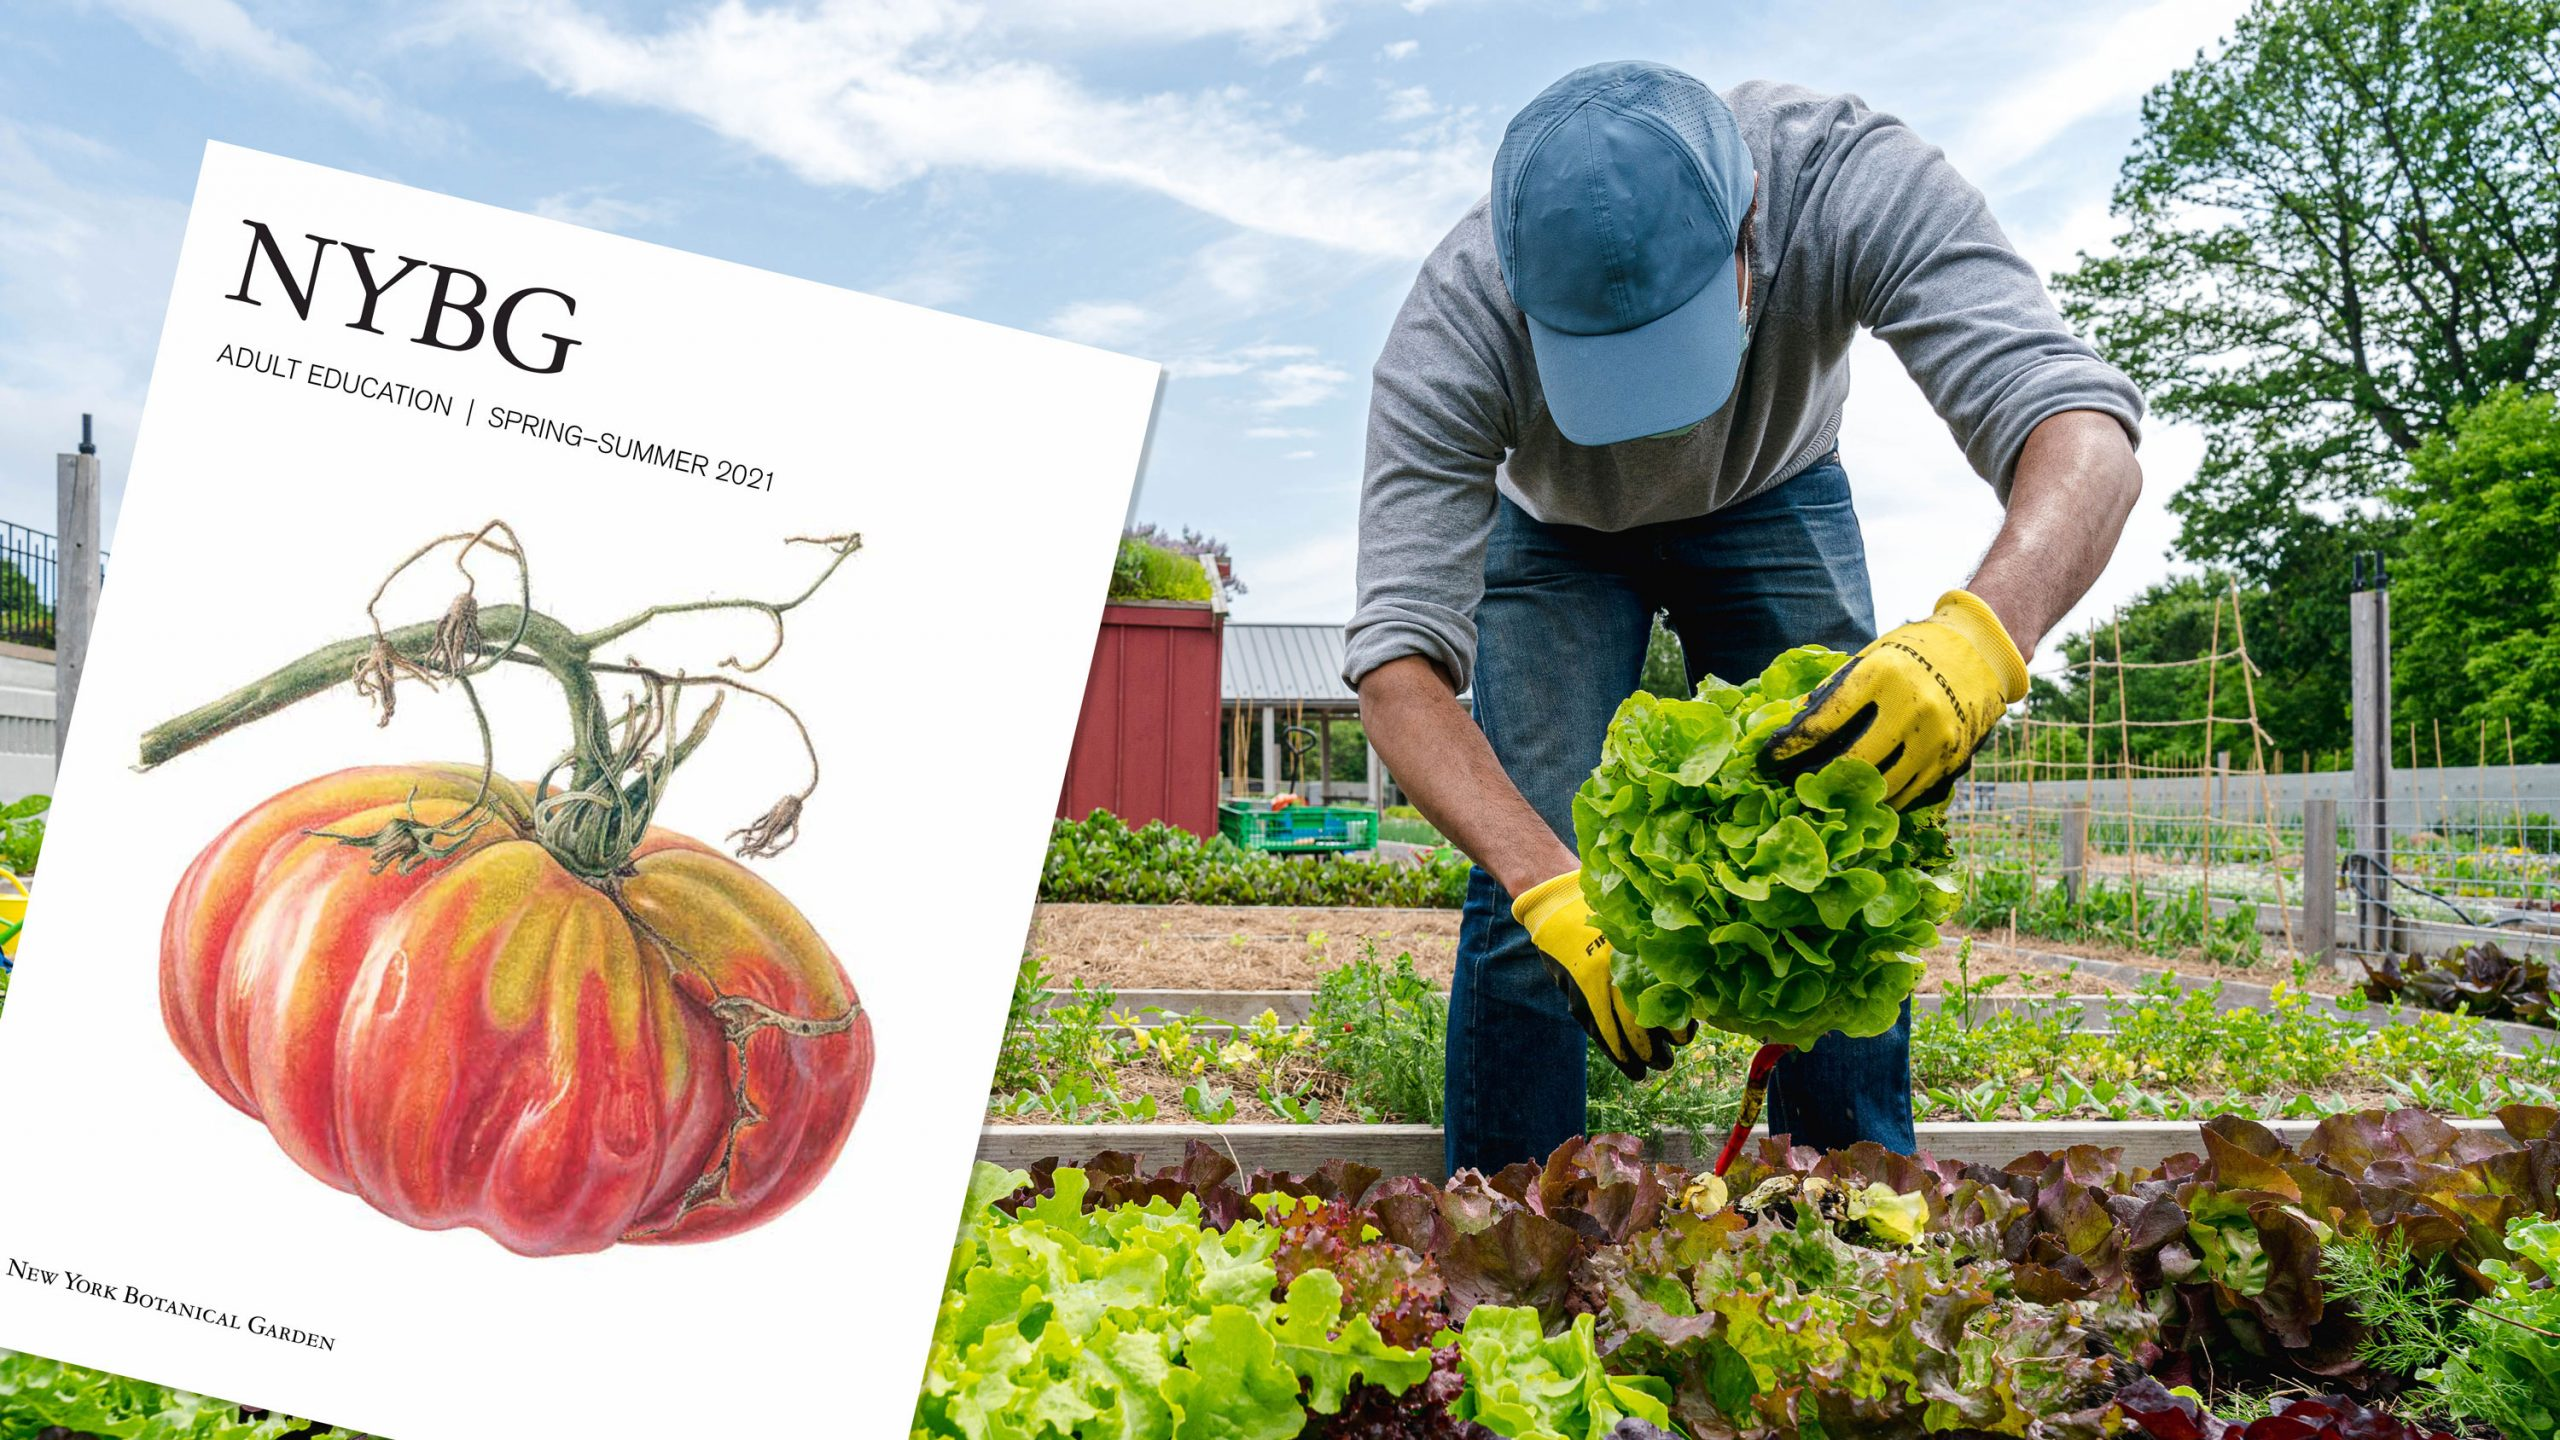 Photo of a gardener harvesting produce alongside the catalog cover